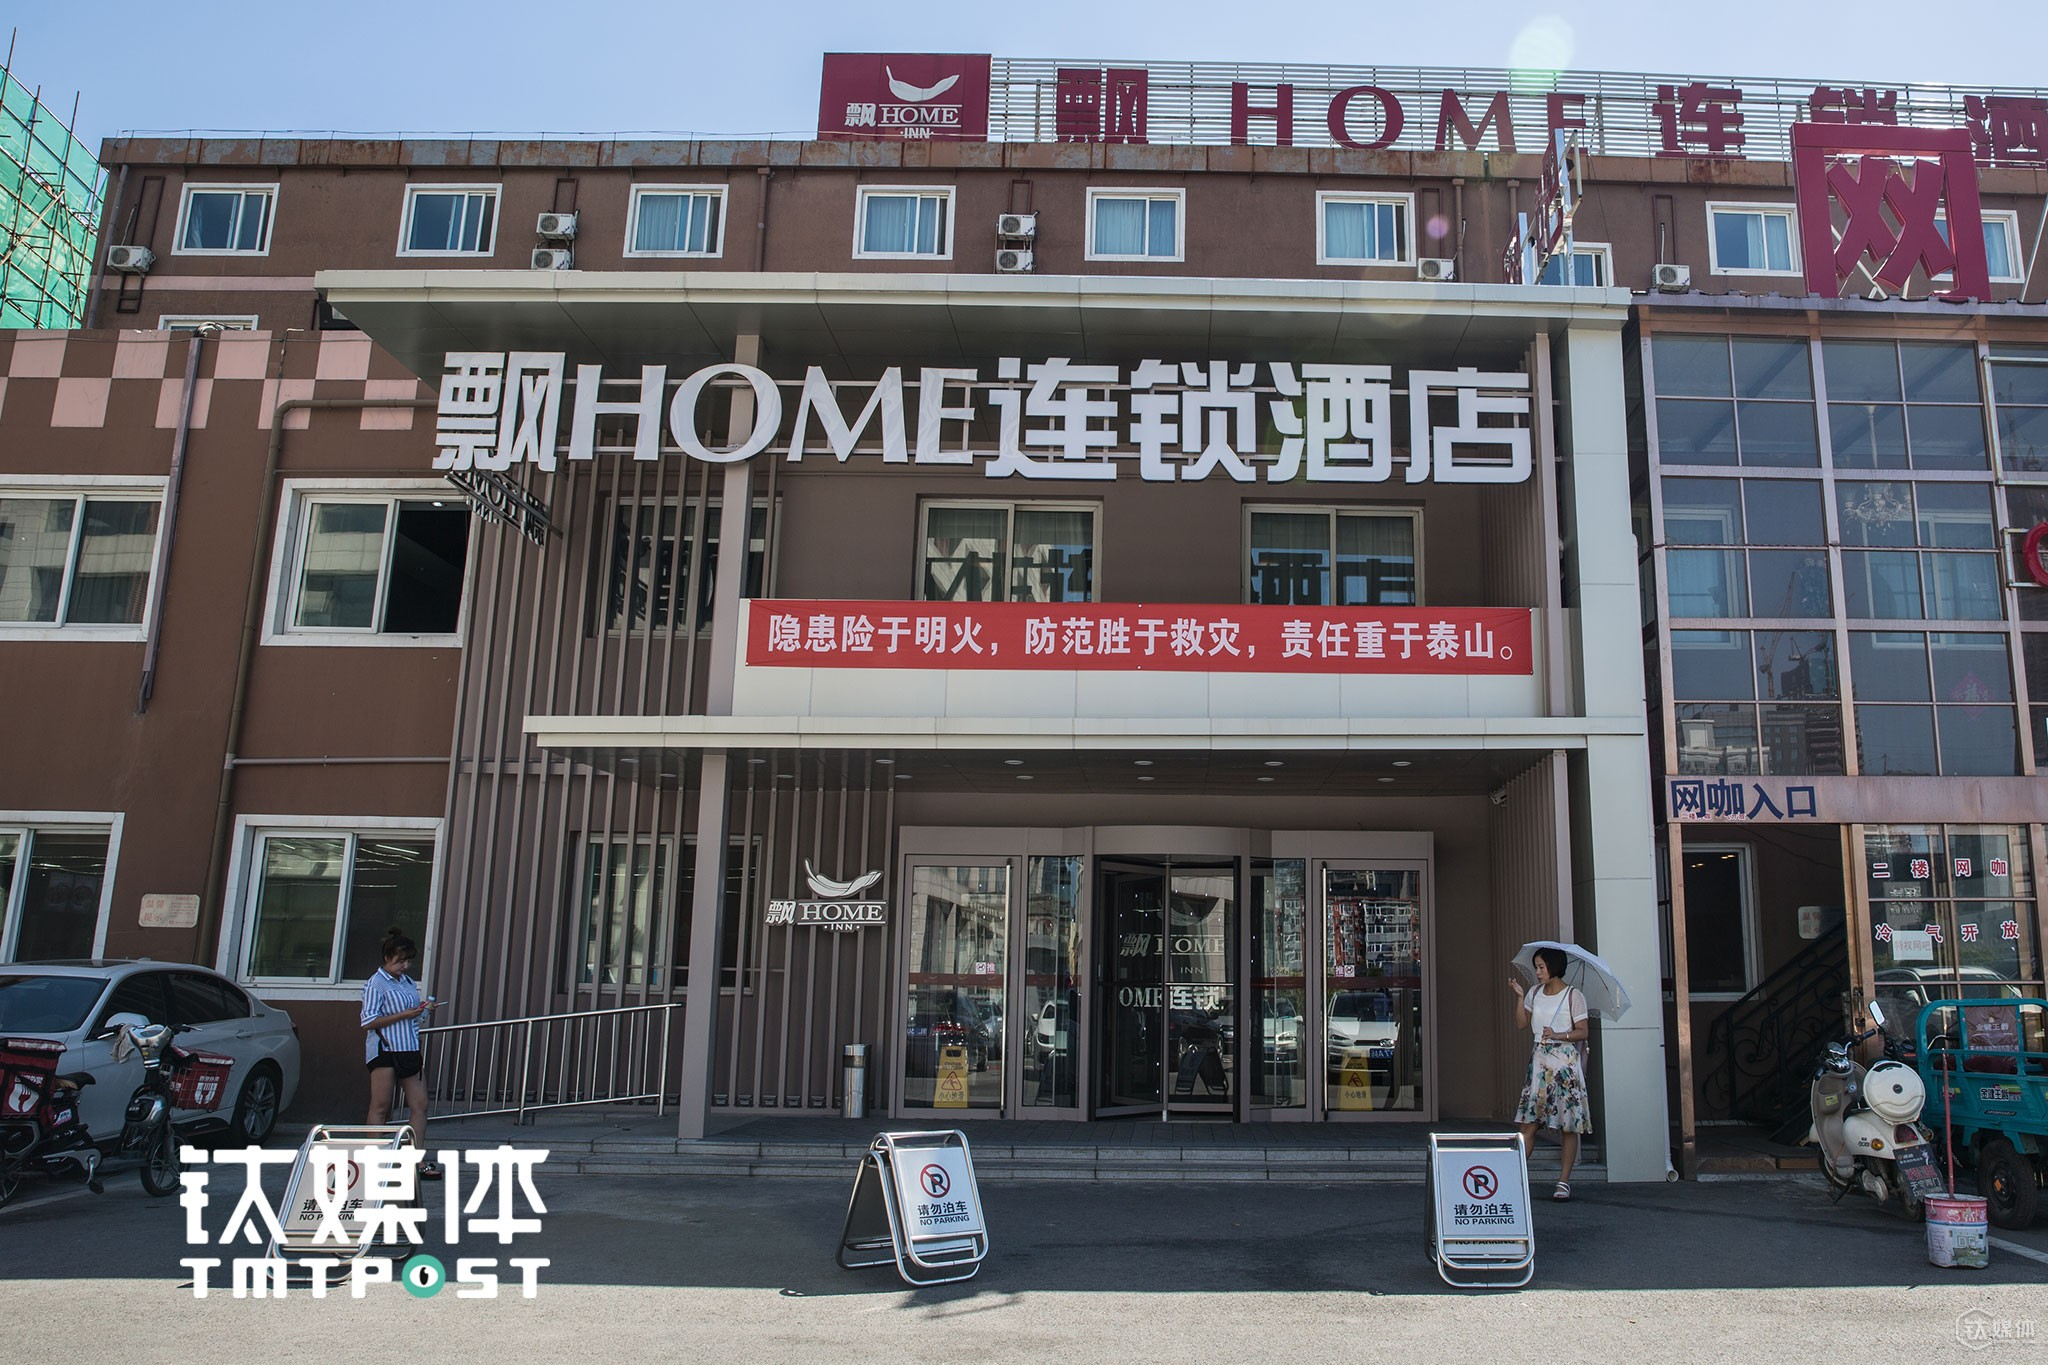 "No matter how many crews come and go, Piao Home Inn remains intact. Although some people believe that the place was filled with piracy and speculation, there are still people who dream about finding an opportunity and becoming famous. "" In China, it's important that people believe that the competition is fair. Piao Home Inn is popular exactly because it gives everybody who comes here an opportunity,"" a young people explained to TMTpost."